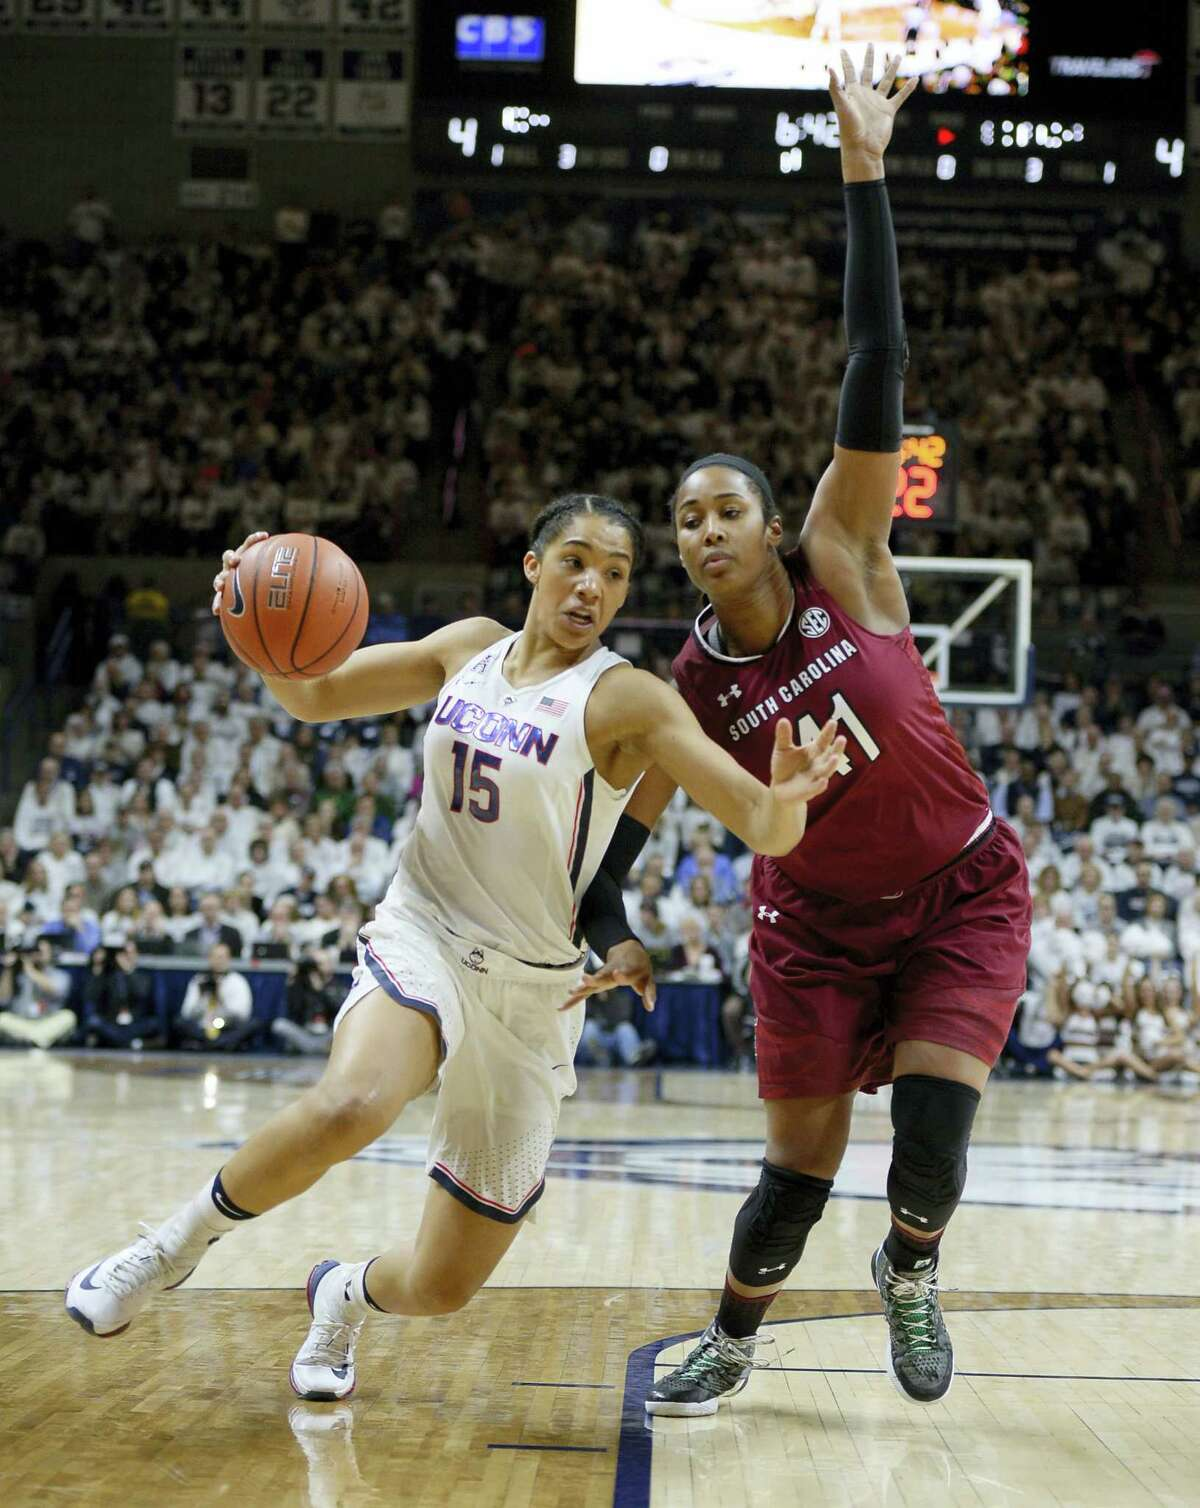 UConn's Gabby Williams drives to the basket as South Carolina's Alaina Coates, right, defends during Monday's game.